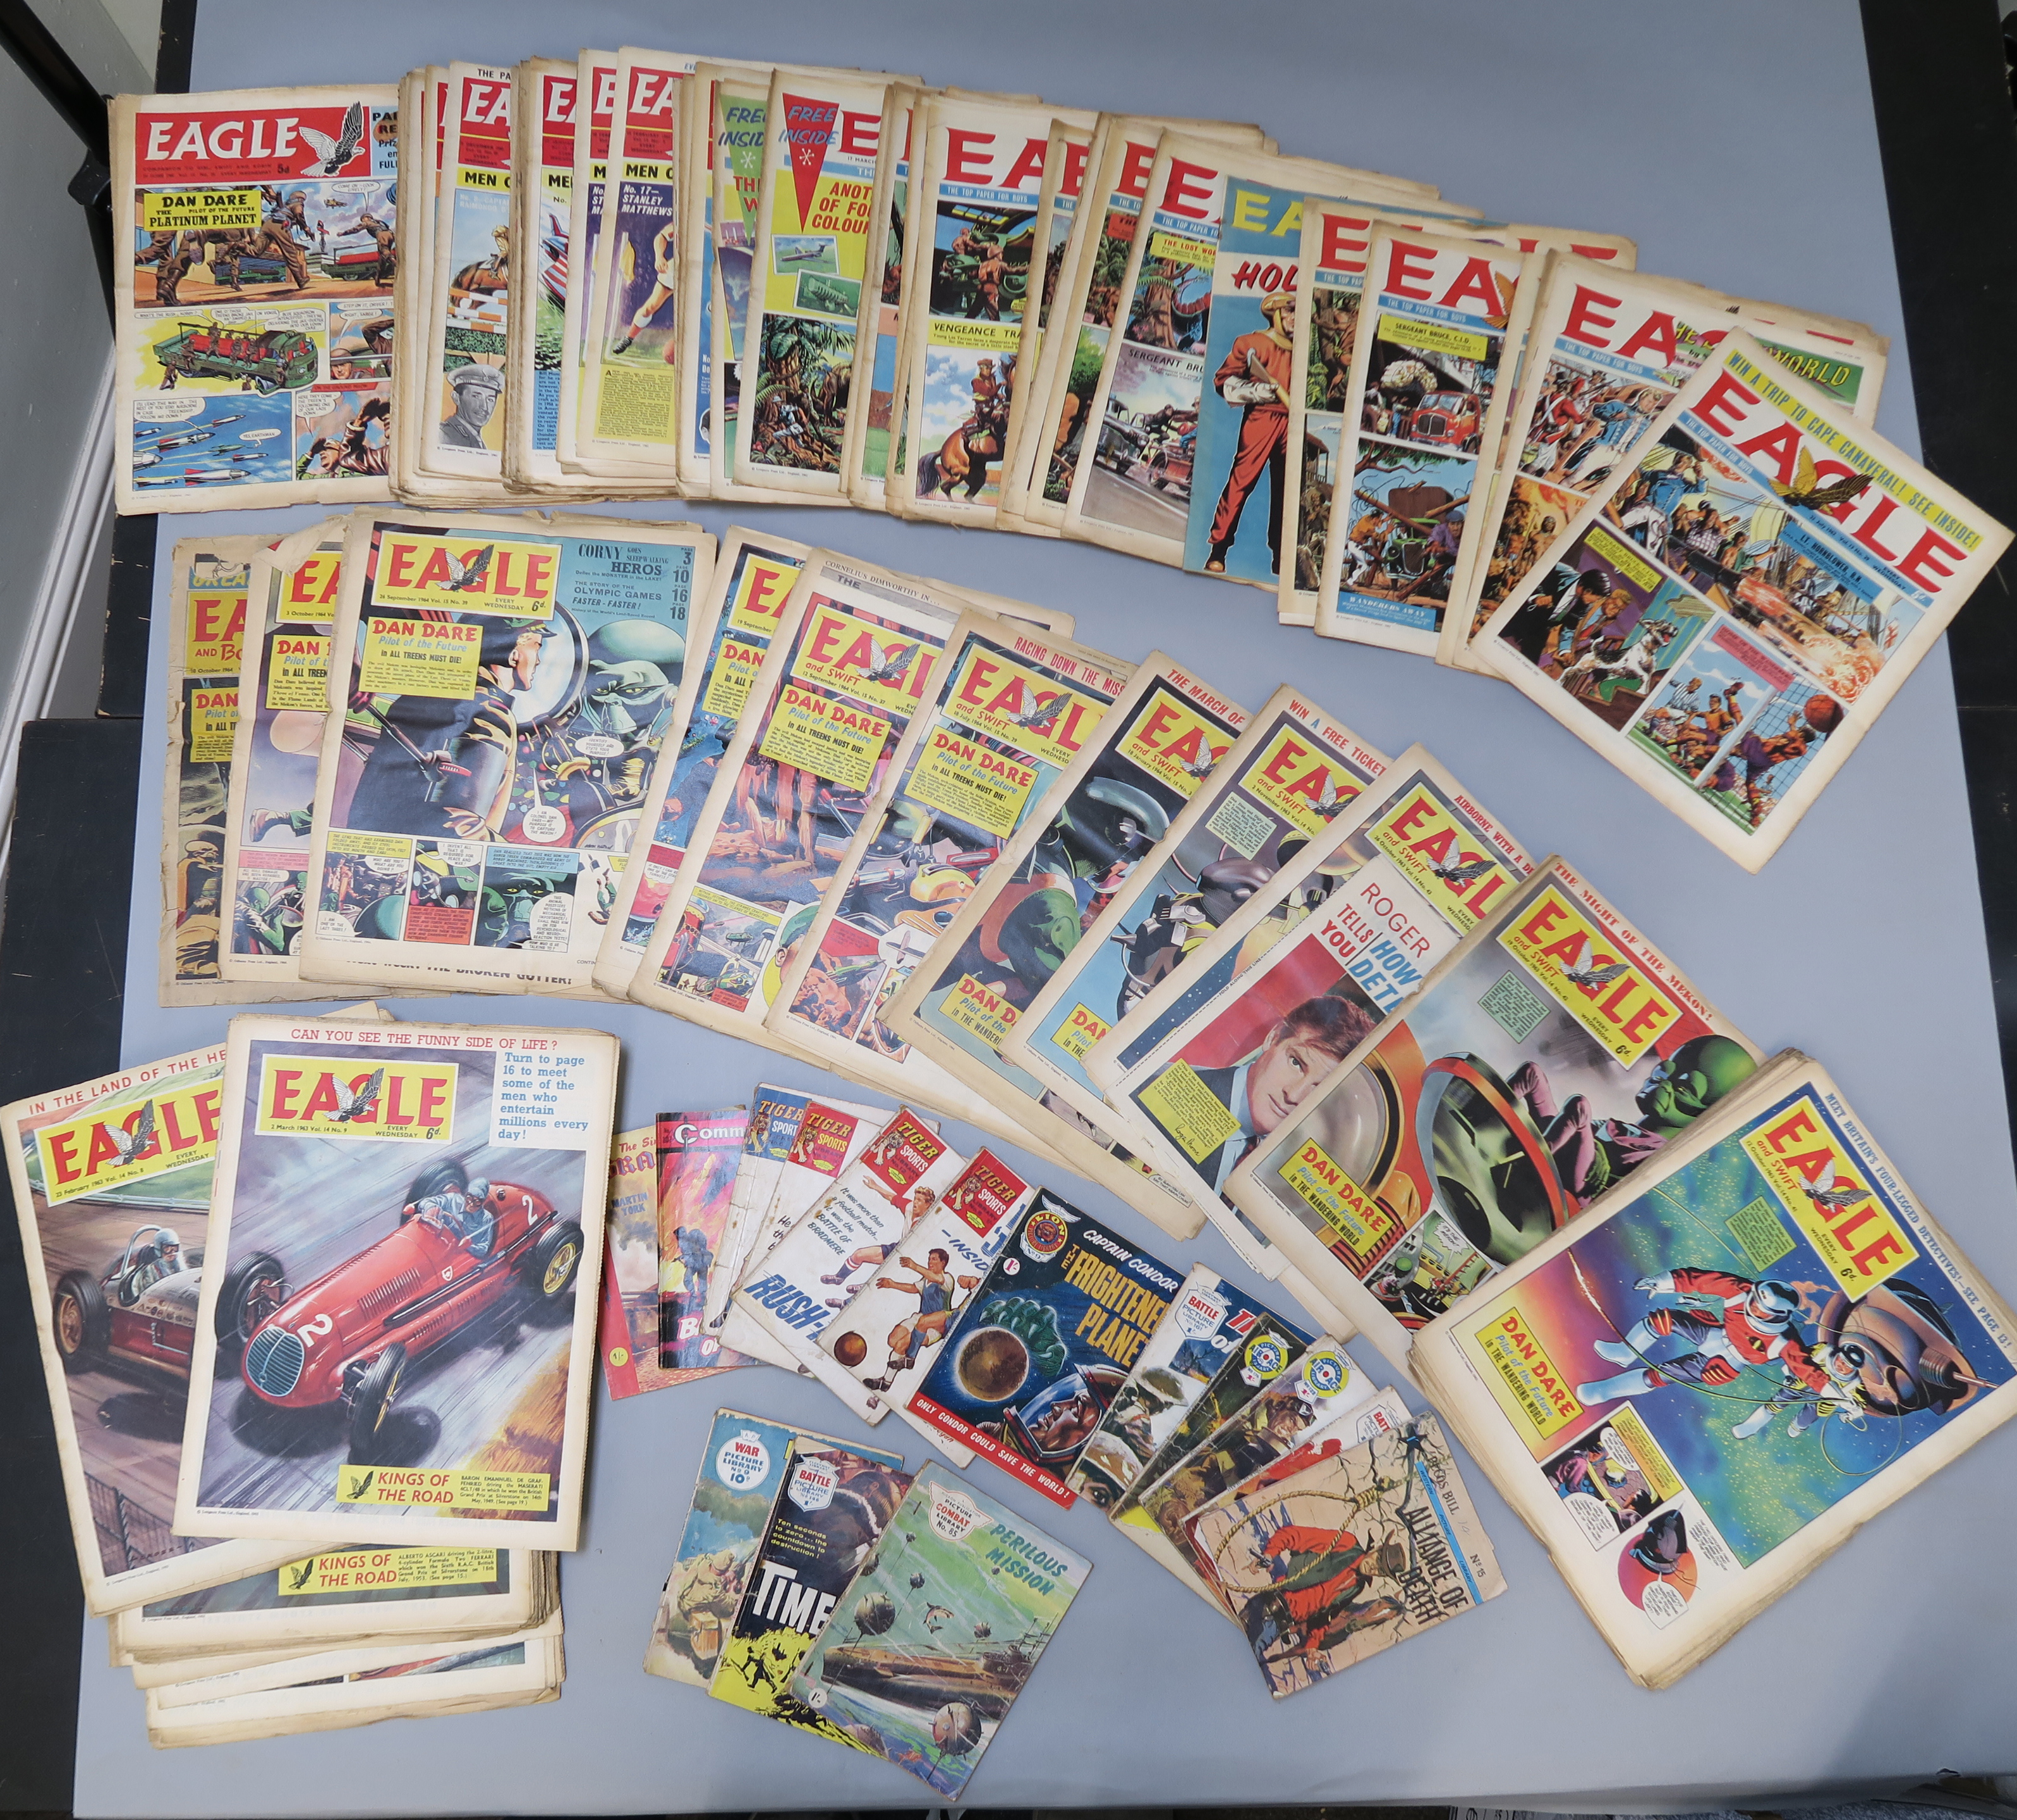 Lot 275 - Eagle comics from 24th June 1961 to 10th Oct 1964 (Eagle and Boys World) plus pocket books inc